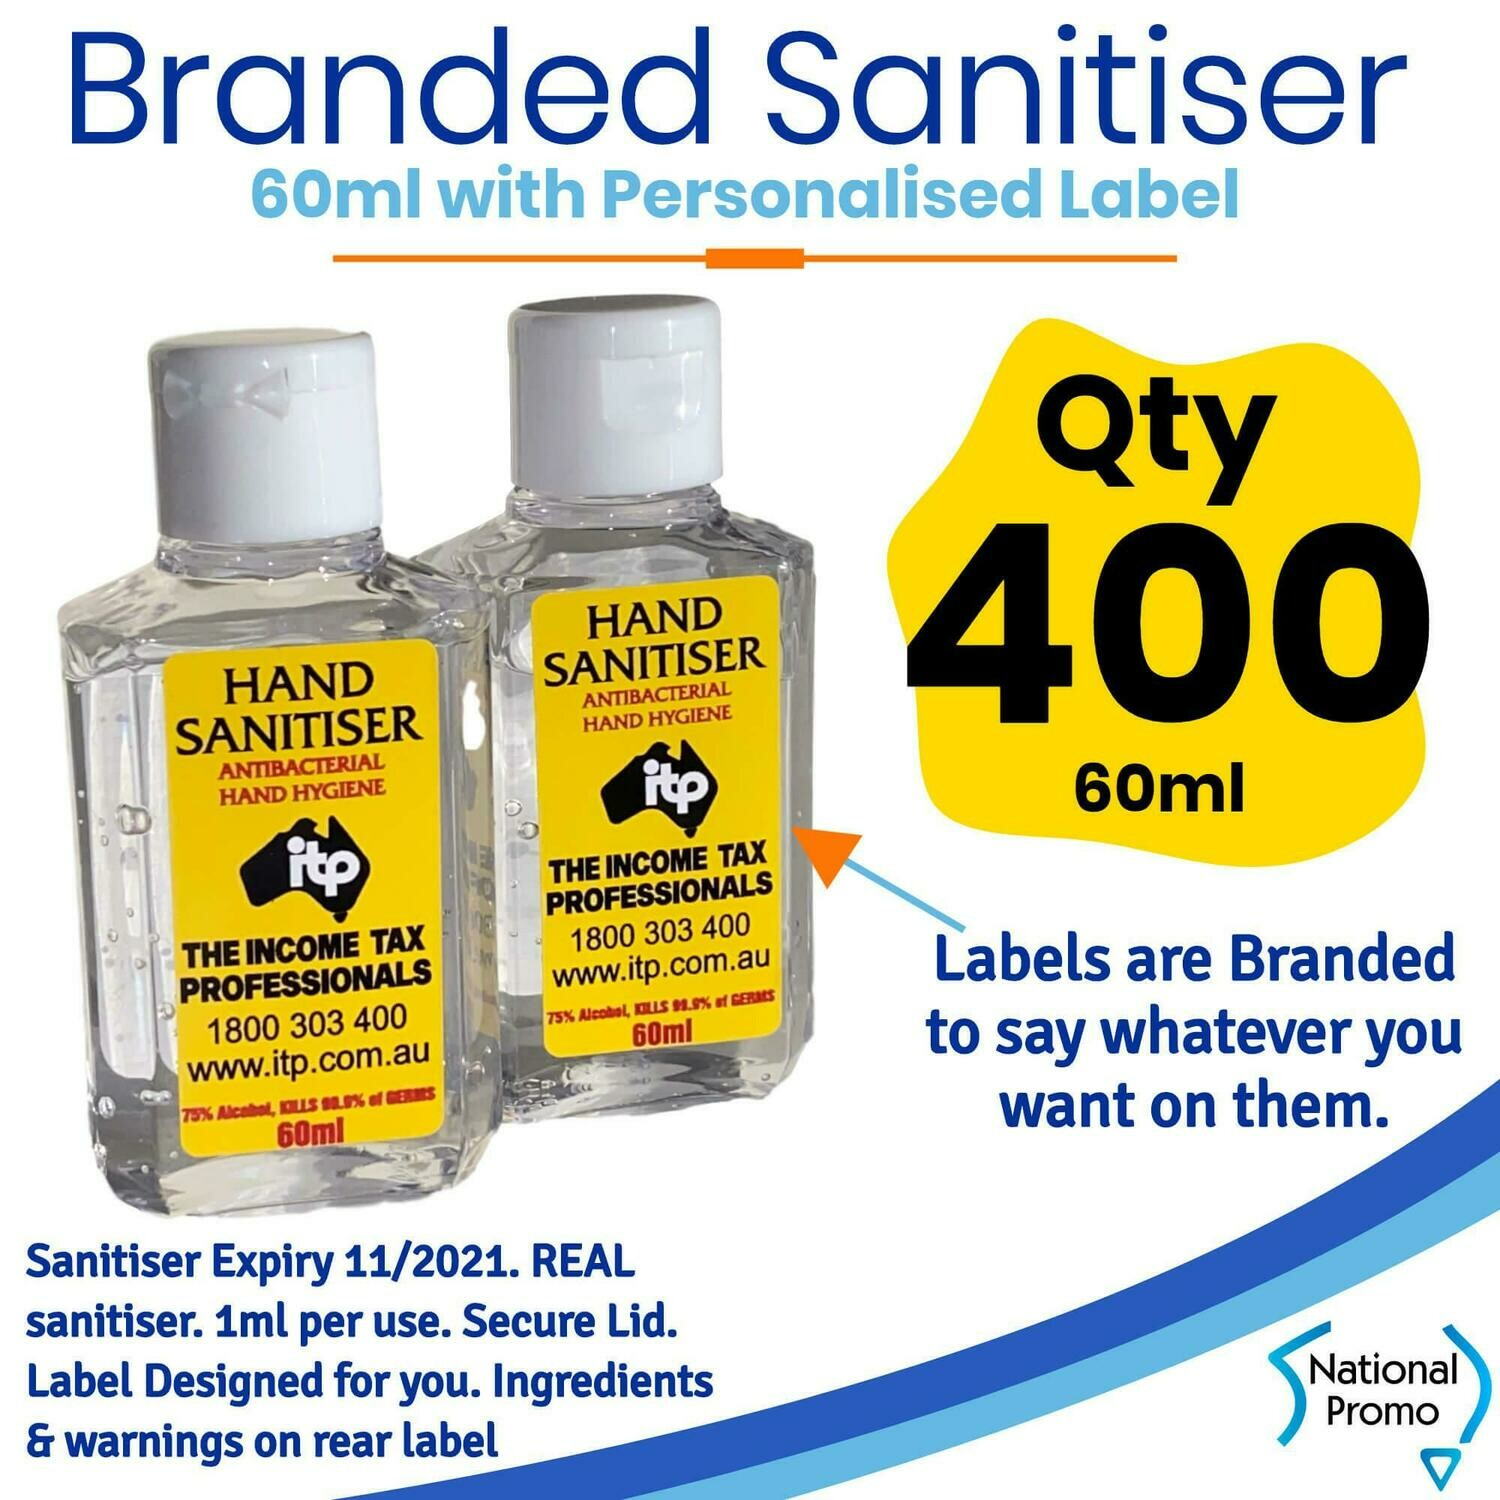 Qty of 400 x 60ml Hand Sanitiser with Personalised Labels